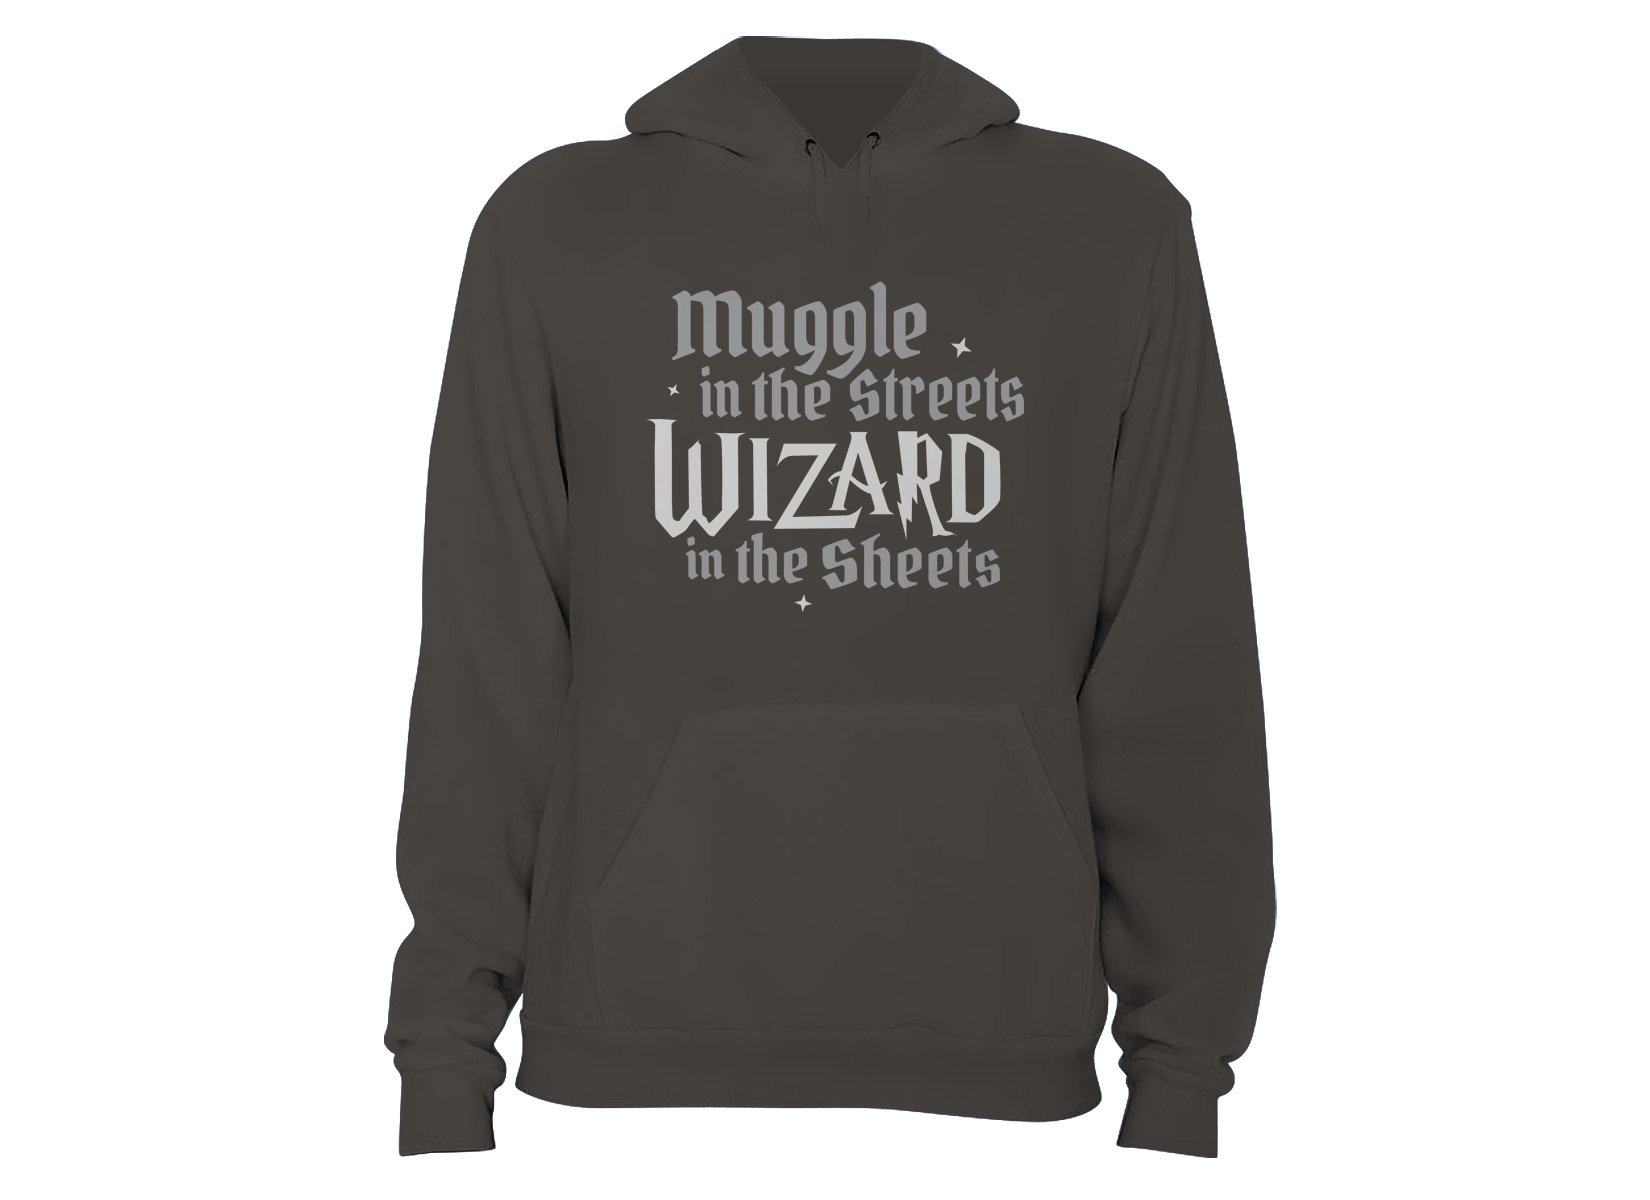 Muggle In The Streets, Wizard In The Sheets on Hoodie